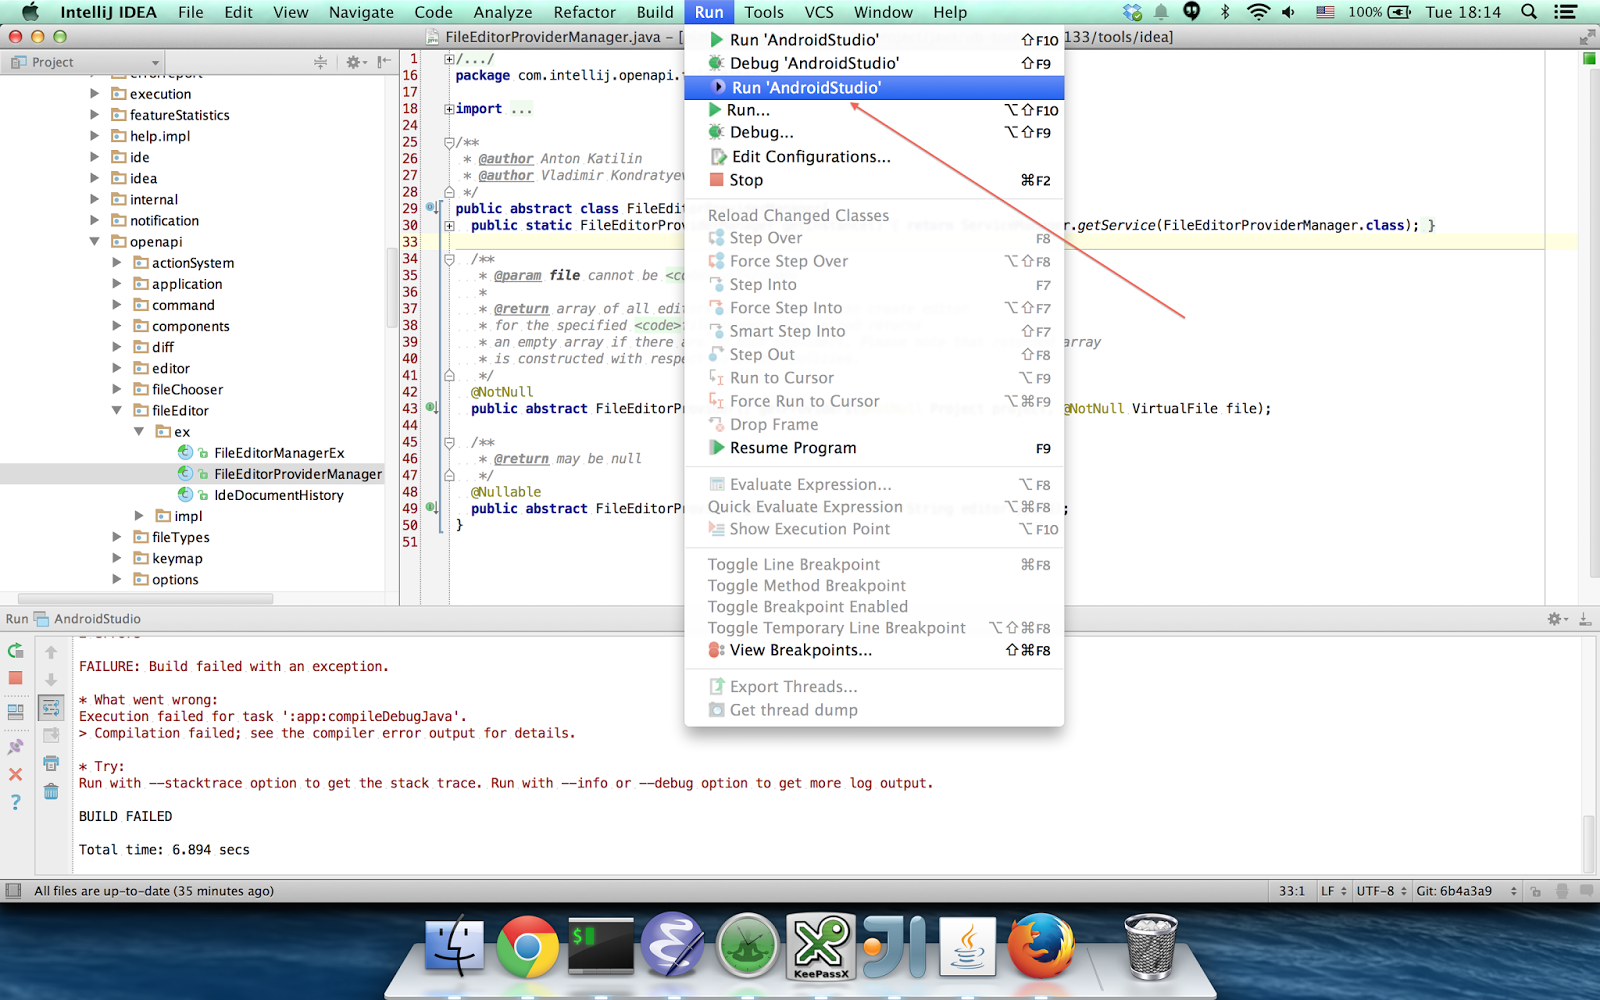 swing-explorer for IntelliJ IDEA 13 x | programming addicted